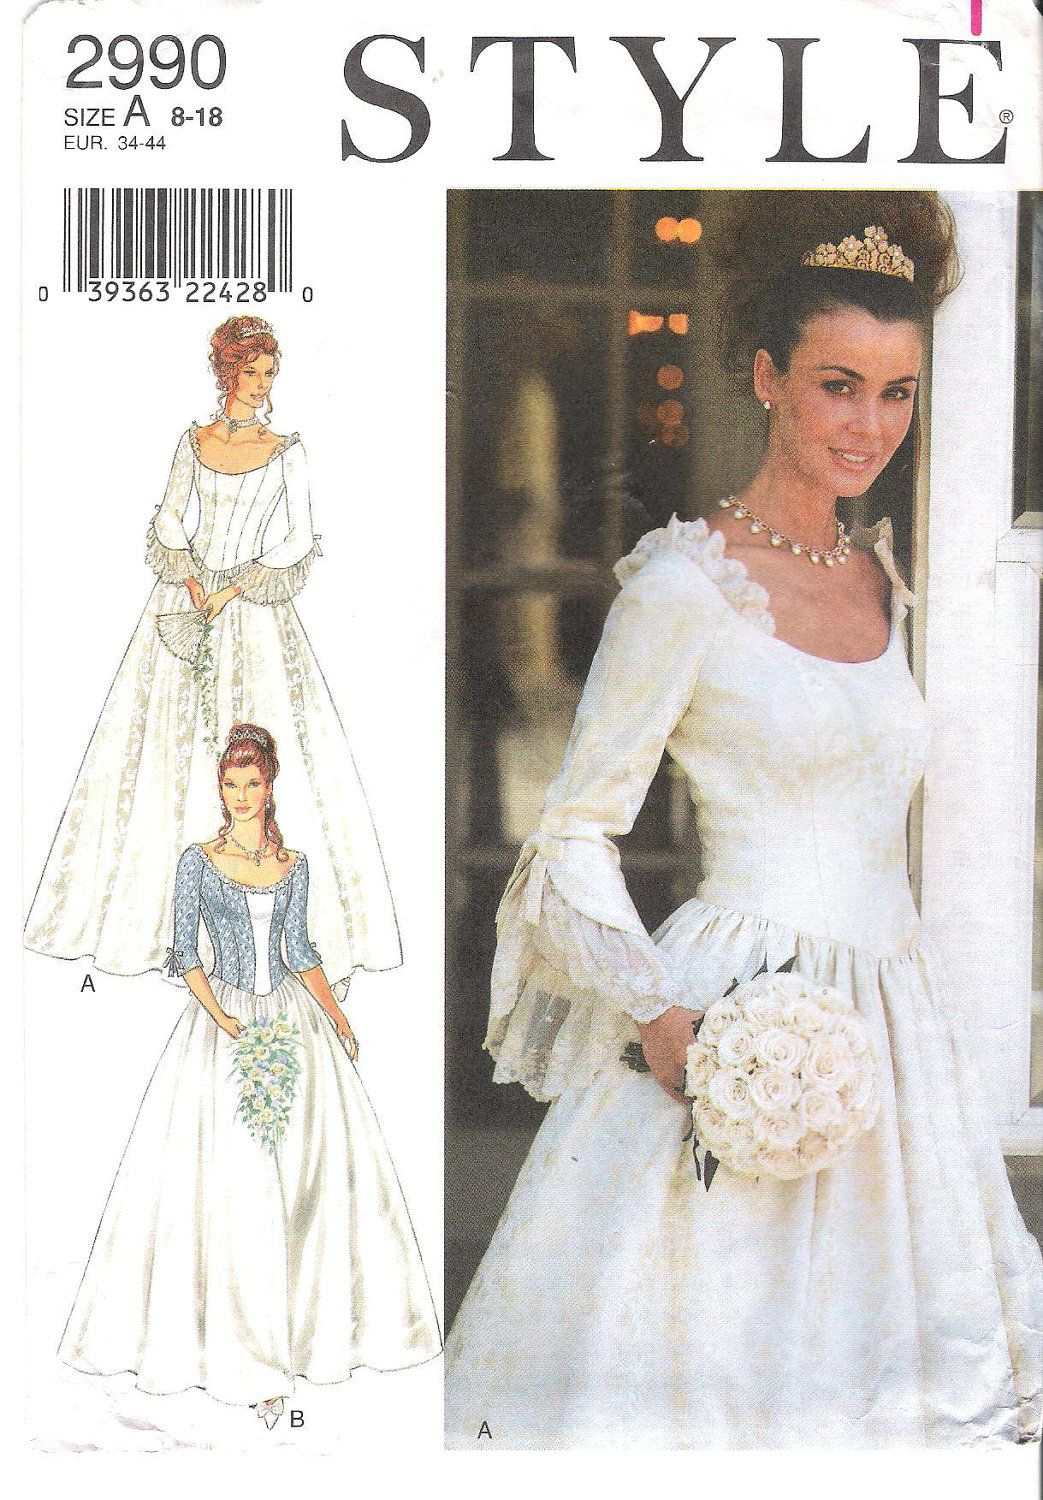 Lovely Princess Style Scoop Neck Wedding Dress Bridesmaid Ballgown Or Costume Sewing